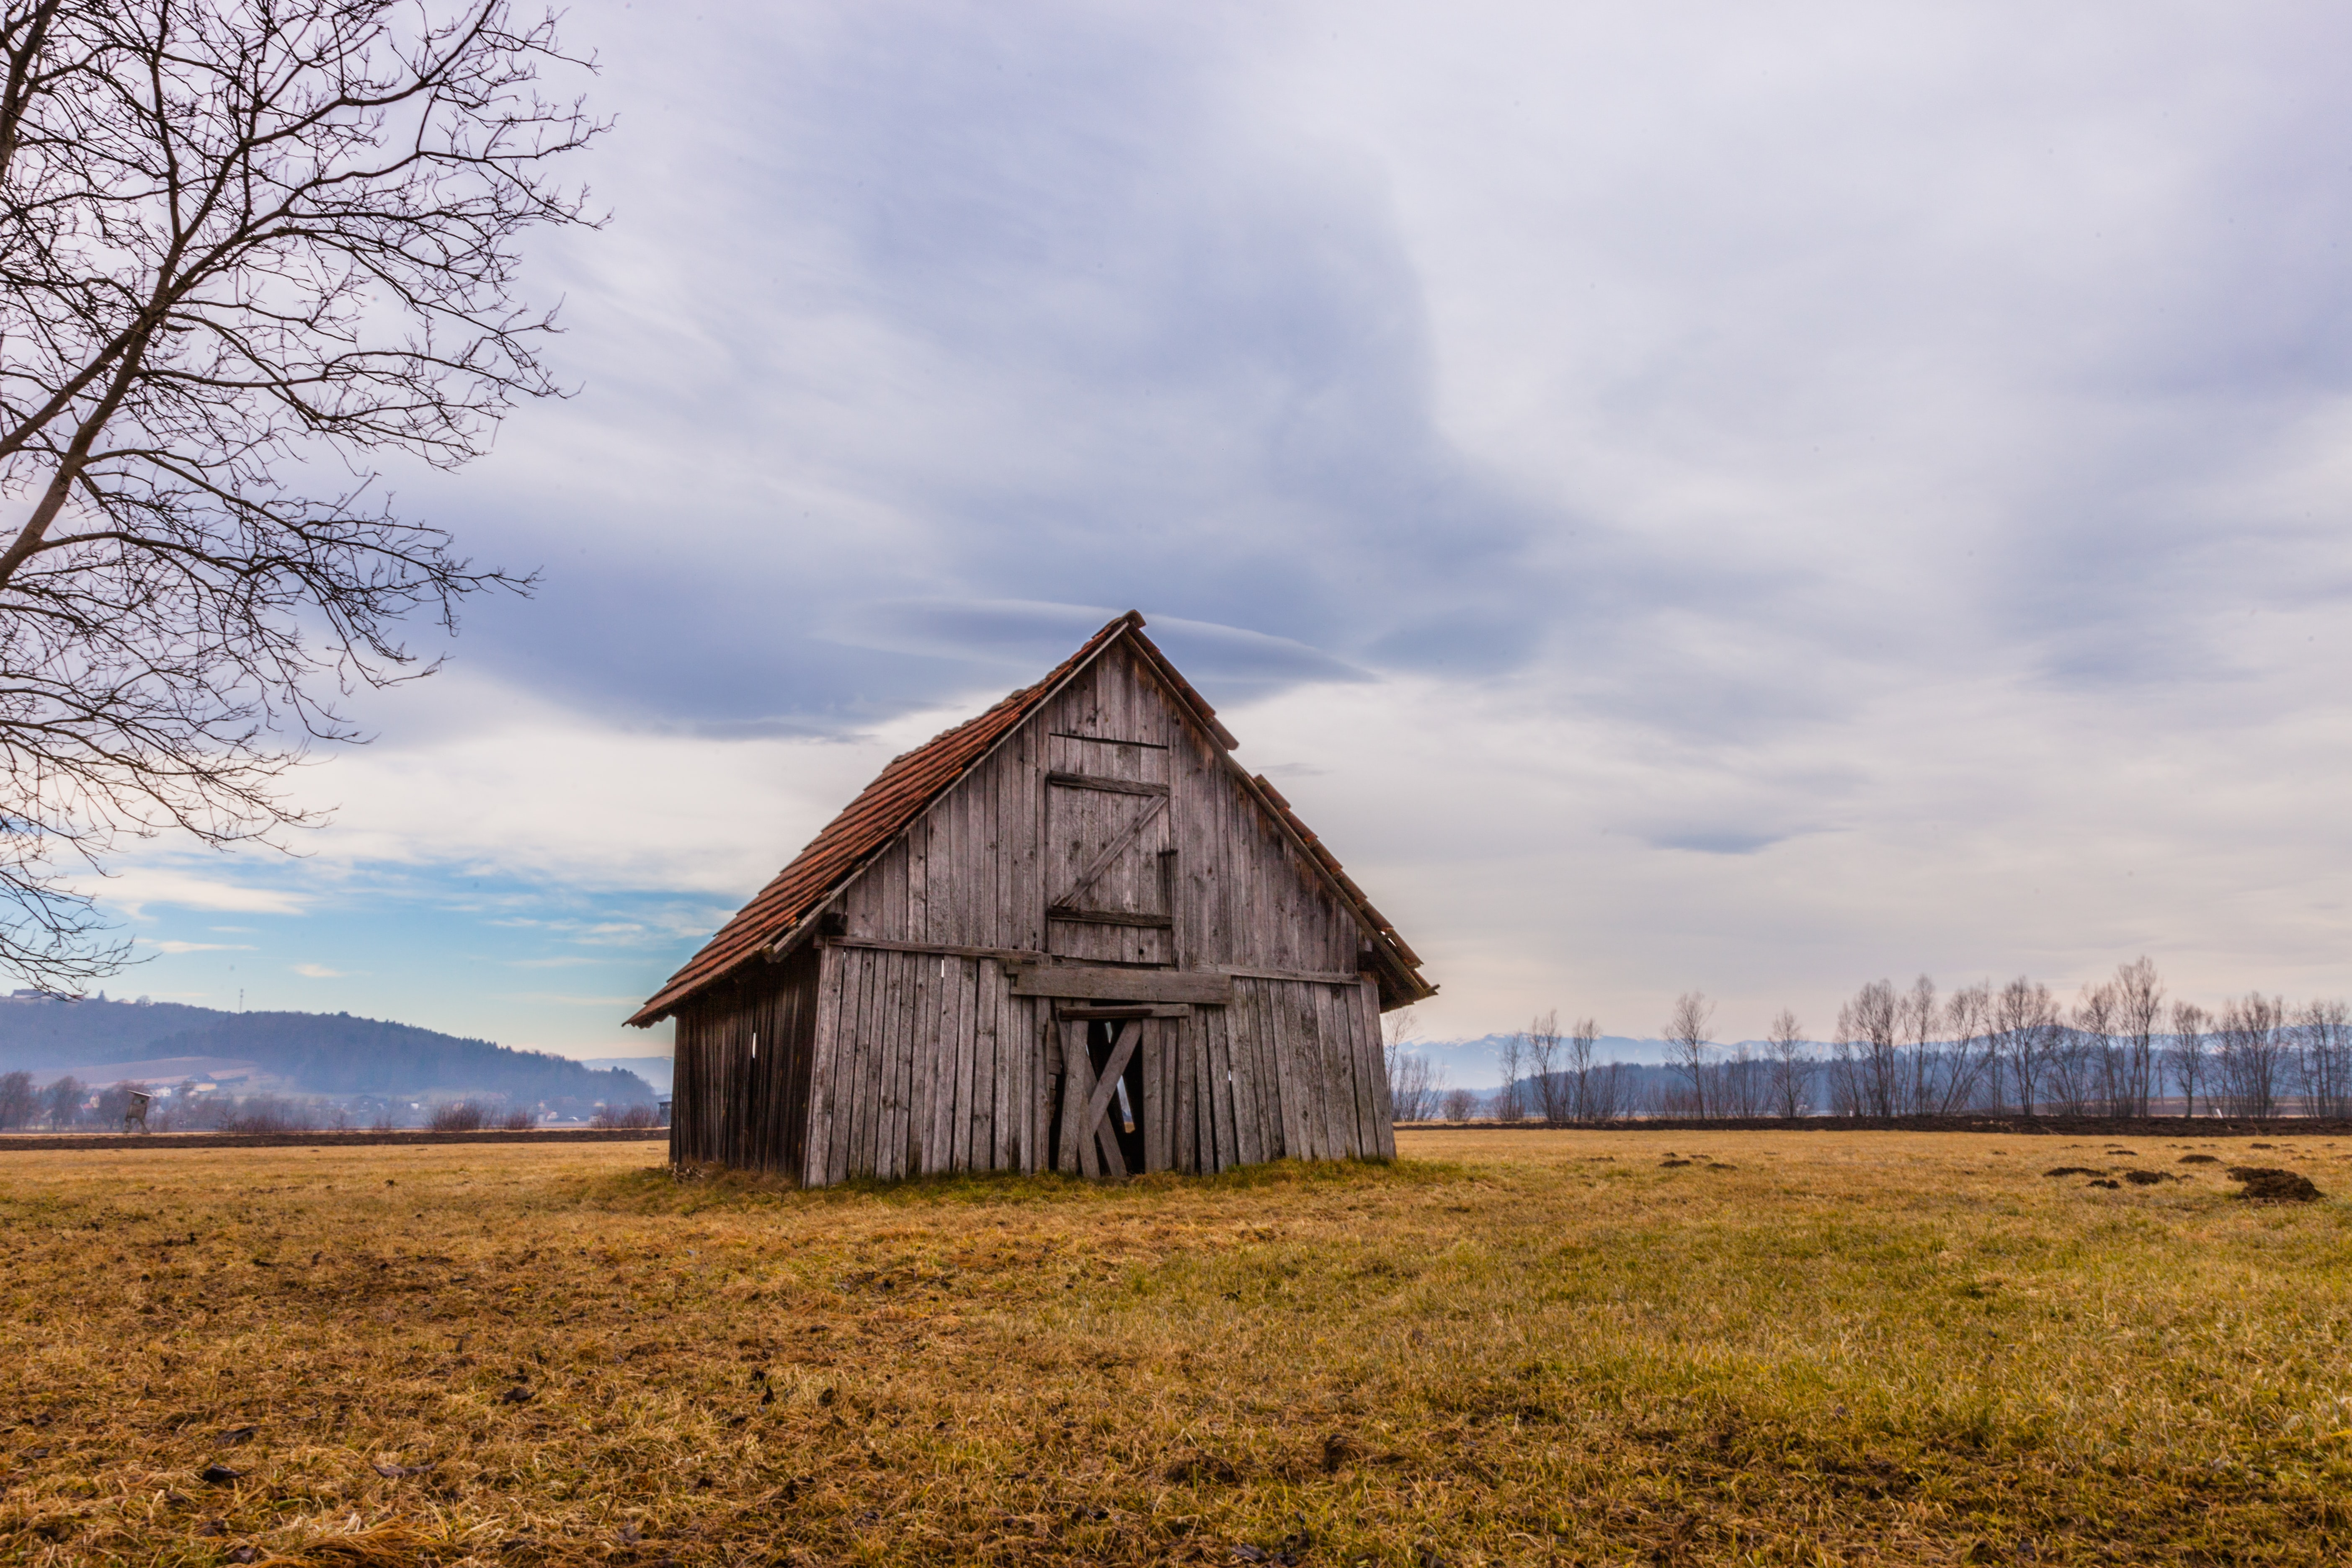 photography of brown wooden hut